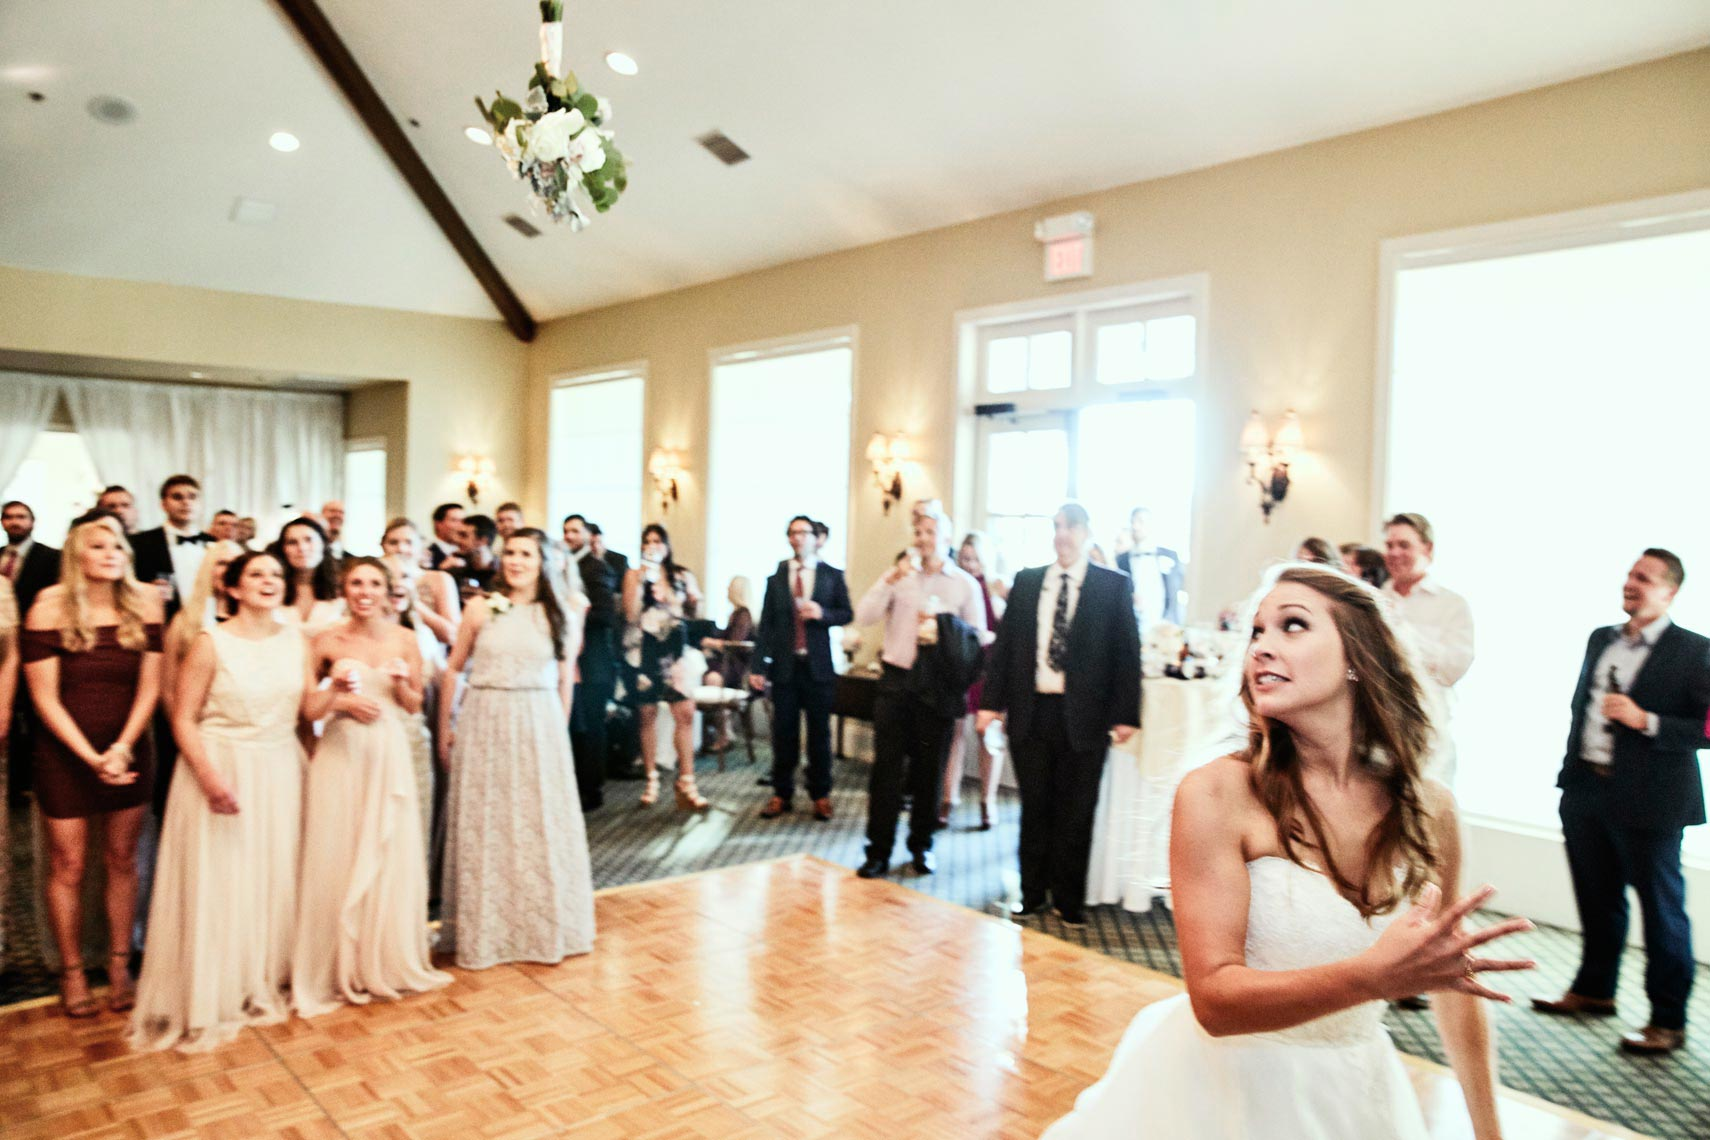 Mainecoastweddingphotography-2-22449